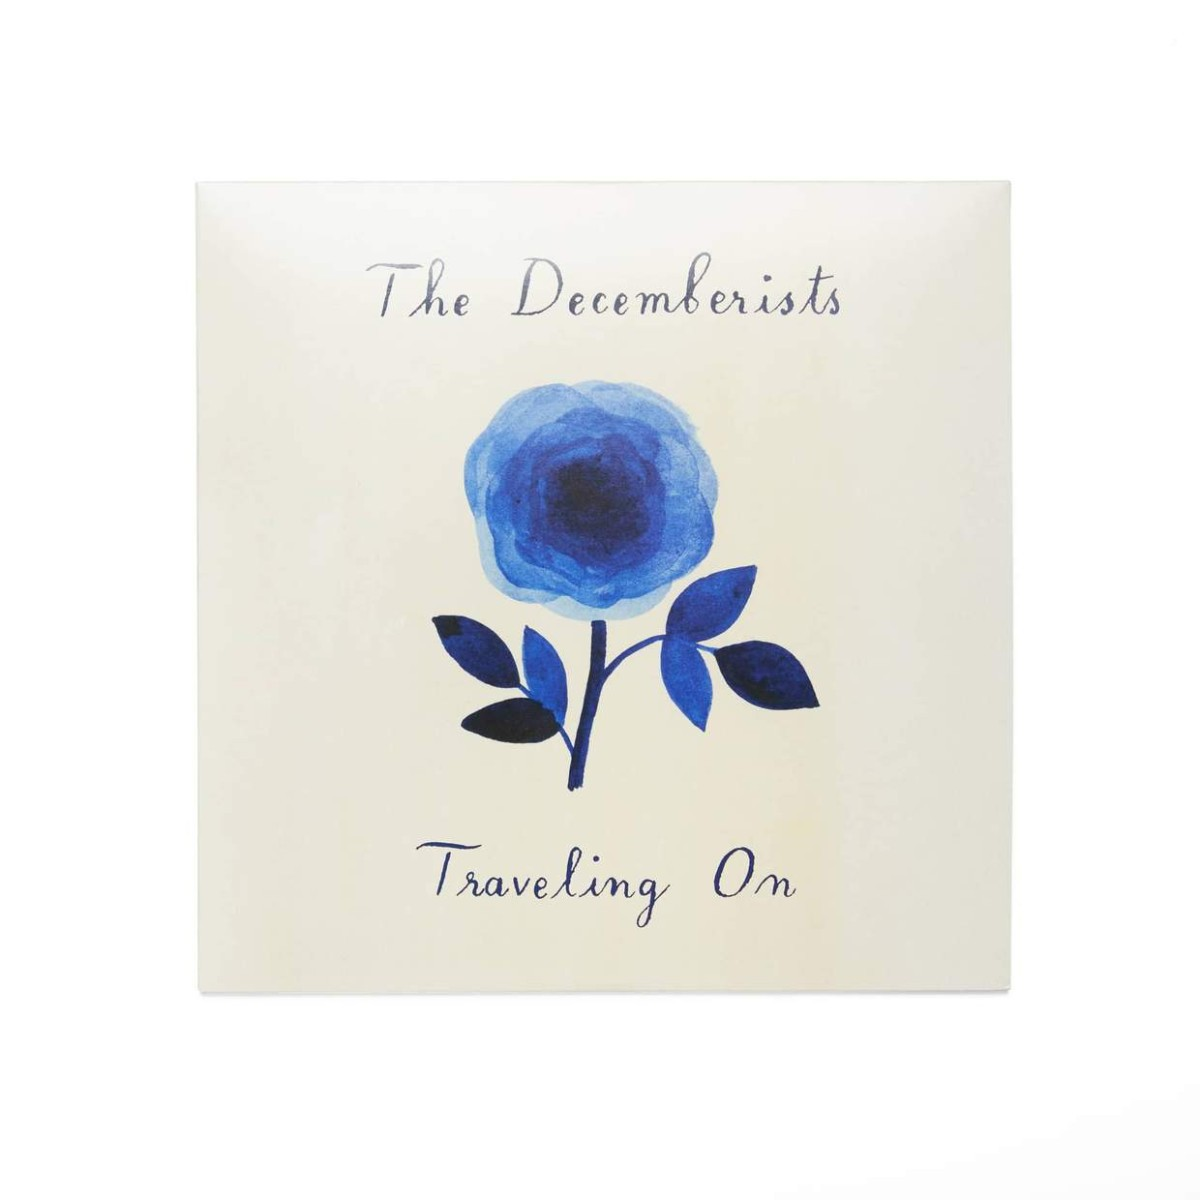 "The Decemberists 'Traveling On' EP 10"" Vinyl"